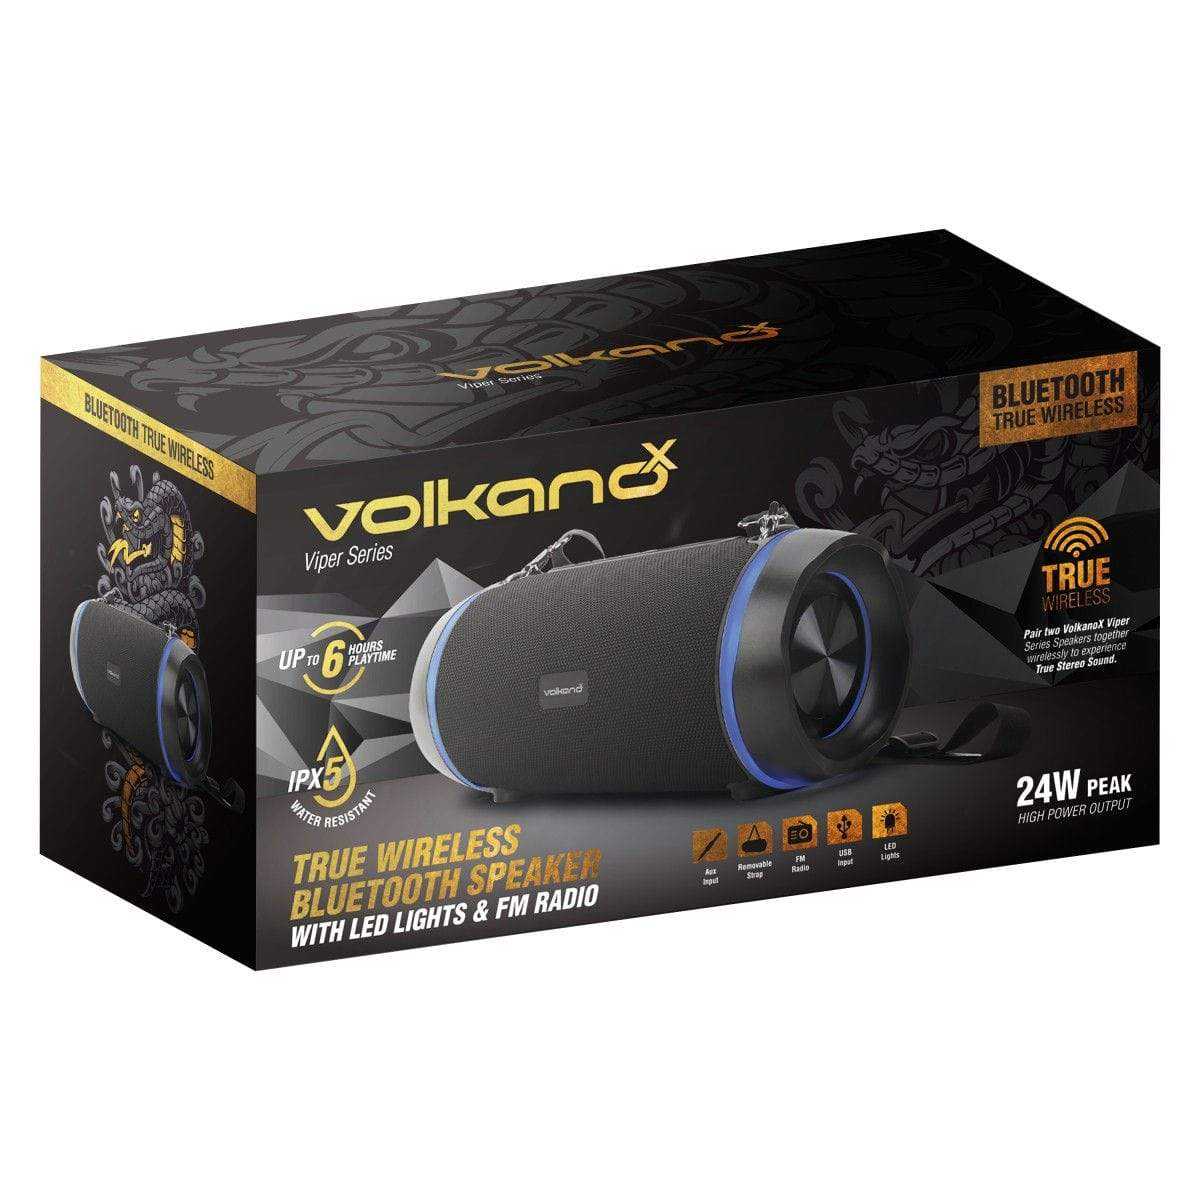 VolkanoX Viper Series Bluetooth Speaker - Black Snatcher Online Shopping South Africa